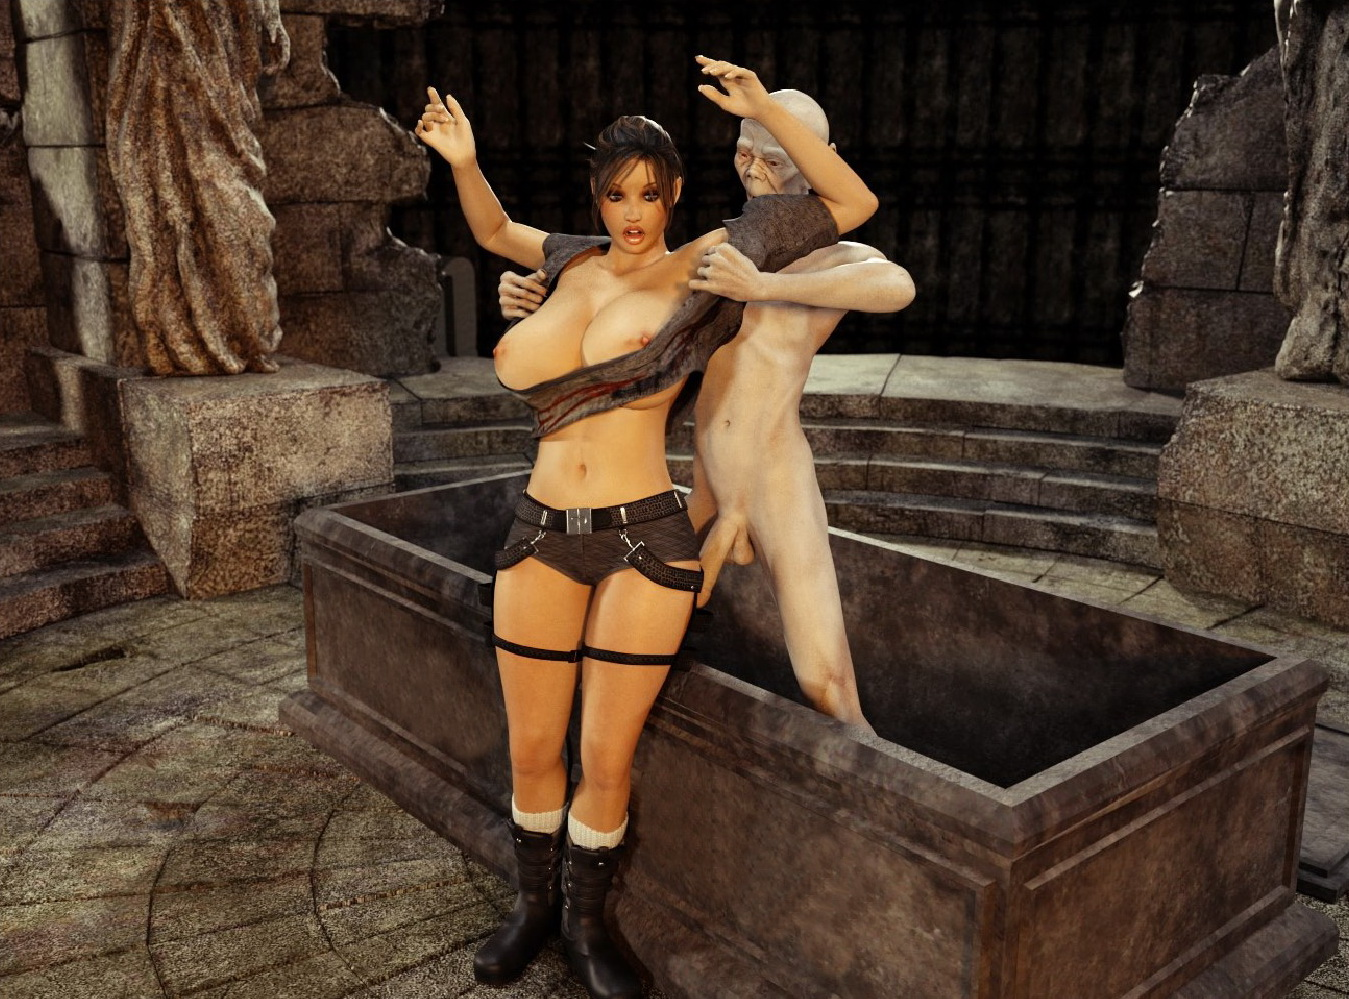 Tomb raider hentai 3d streaming nsfw scene